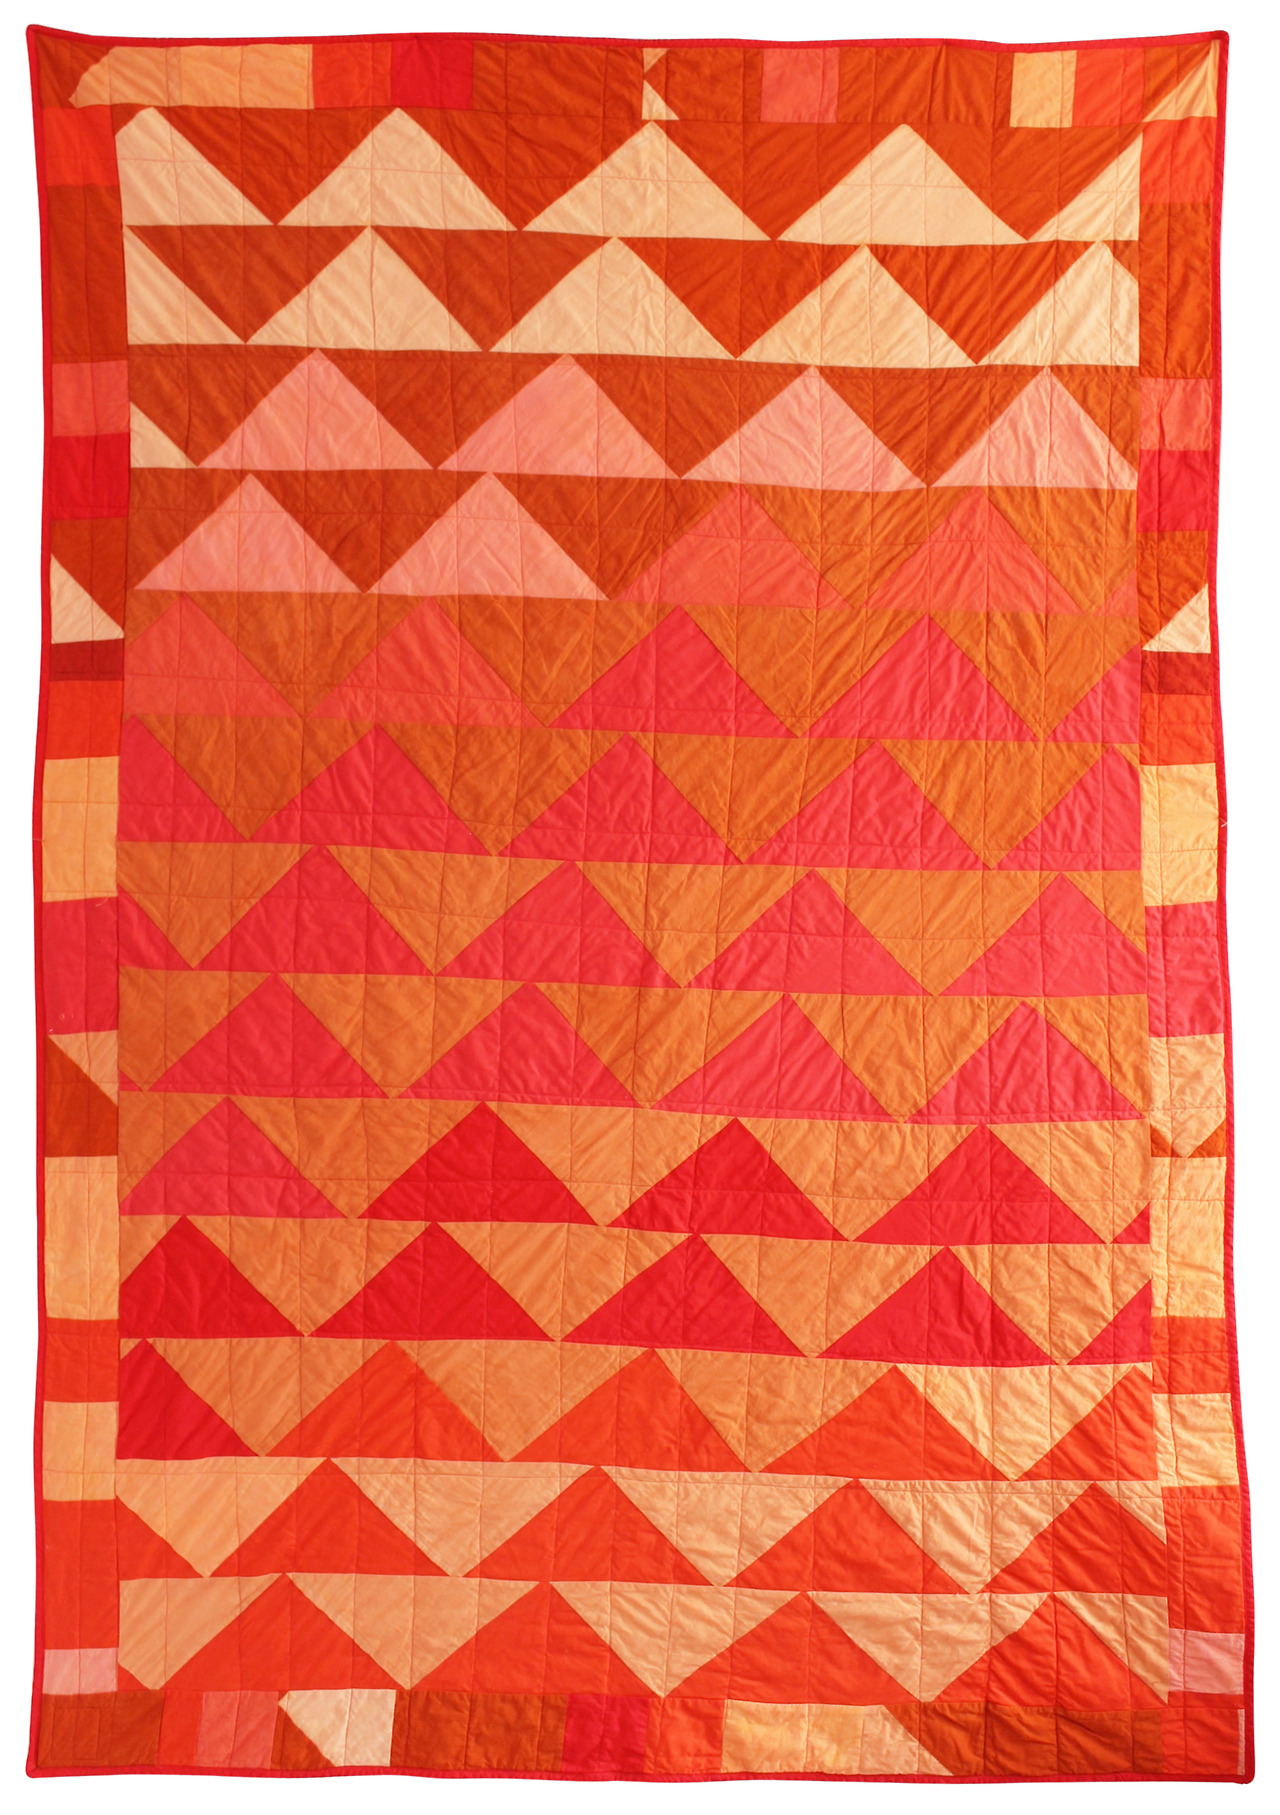 "Summer Night Quilt - 54"" x 80"" Since we're on the subject of summer cravings, I thought I'd tell you I've been craving S'mores lately. That may have something to do with the constant camp fire smell wafting into my apartment - residents of Bushwick love to cook outdoors in the summertime! One whiff of that smokey air and I'm instantly transported to camping trips of my childhood in Leo Carillo, California. We'd make S'mores as we watched the sunset, salty and hungry from swimming in the ocean all day. In this quilt I've built a campfire intuitively, almost unintentionally. Alas, my S'mores craving is still unsatisfied. Here. - Gina Rockenwagner"